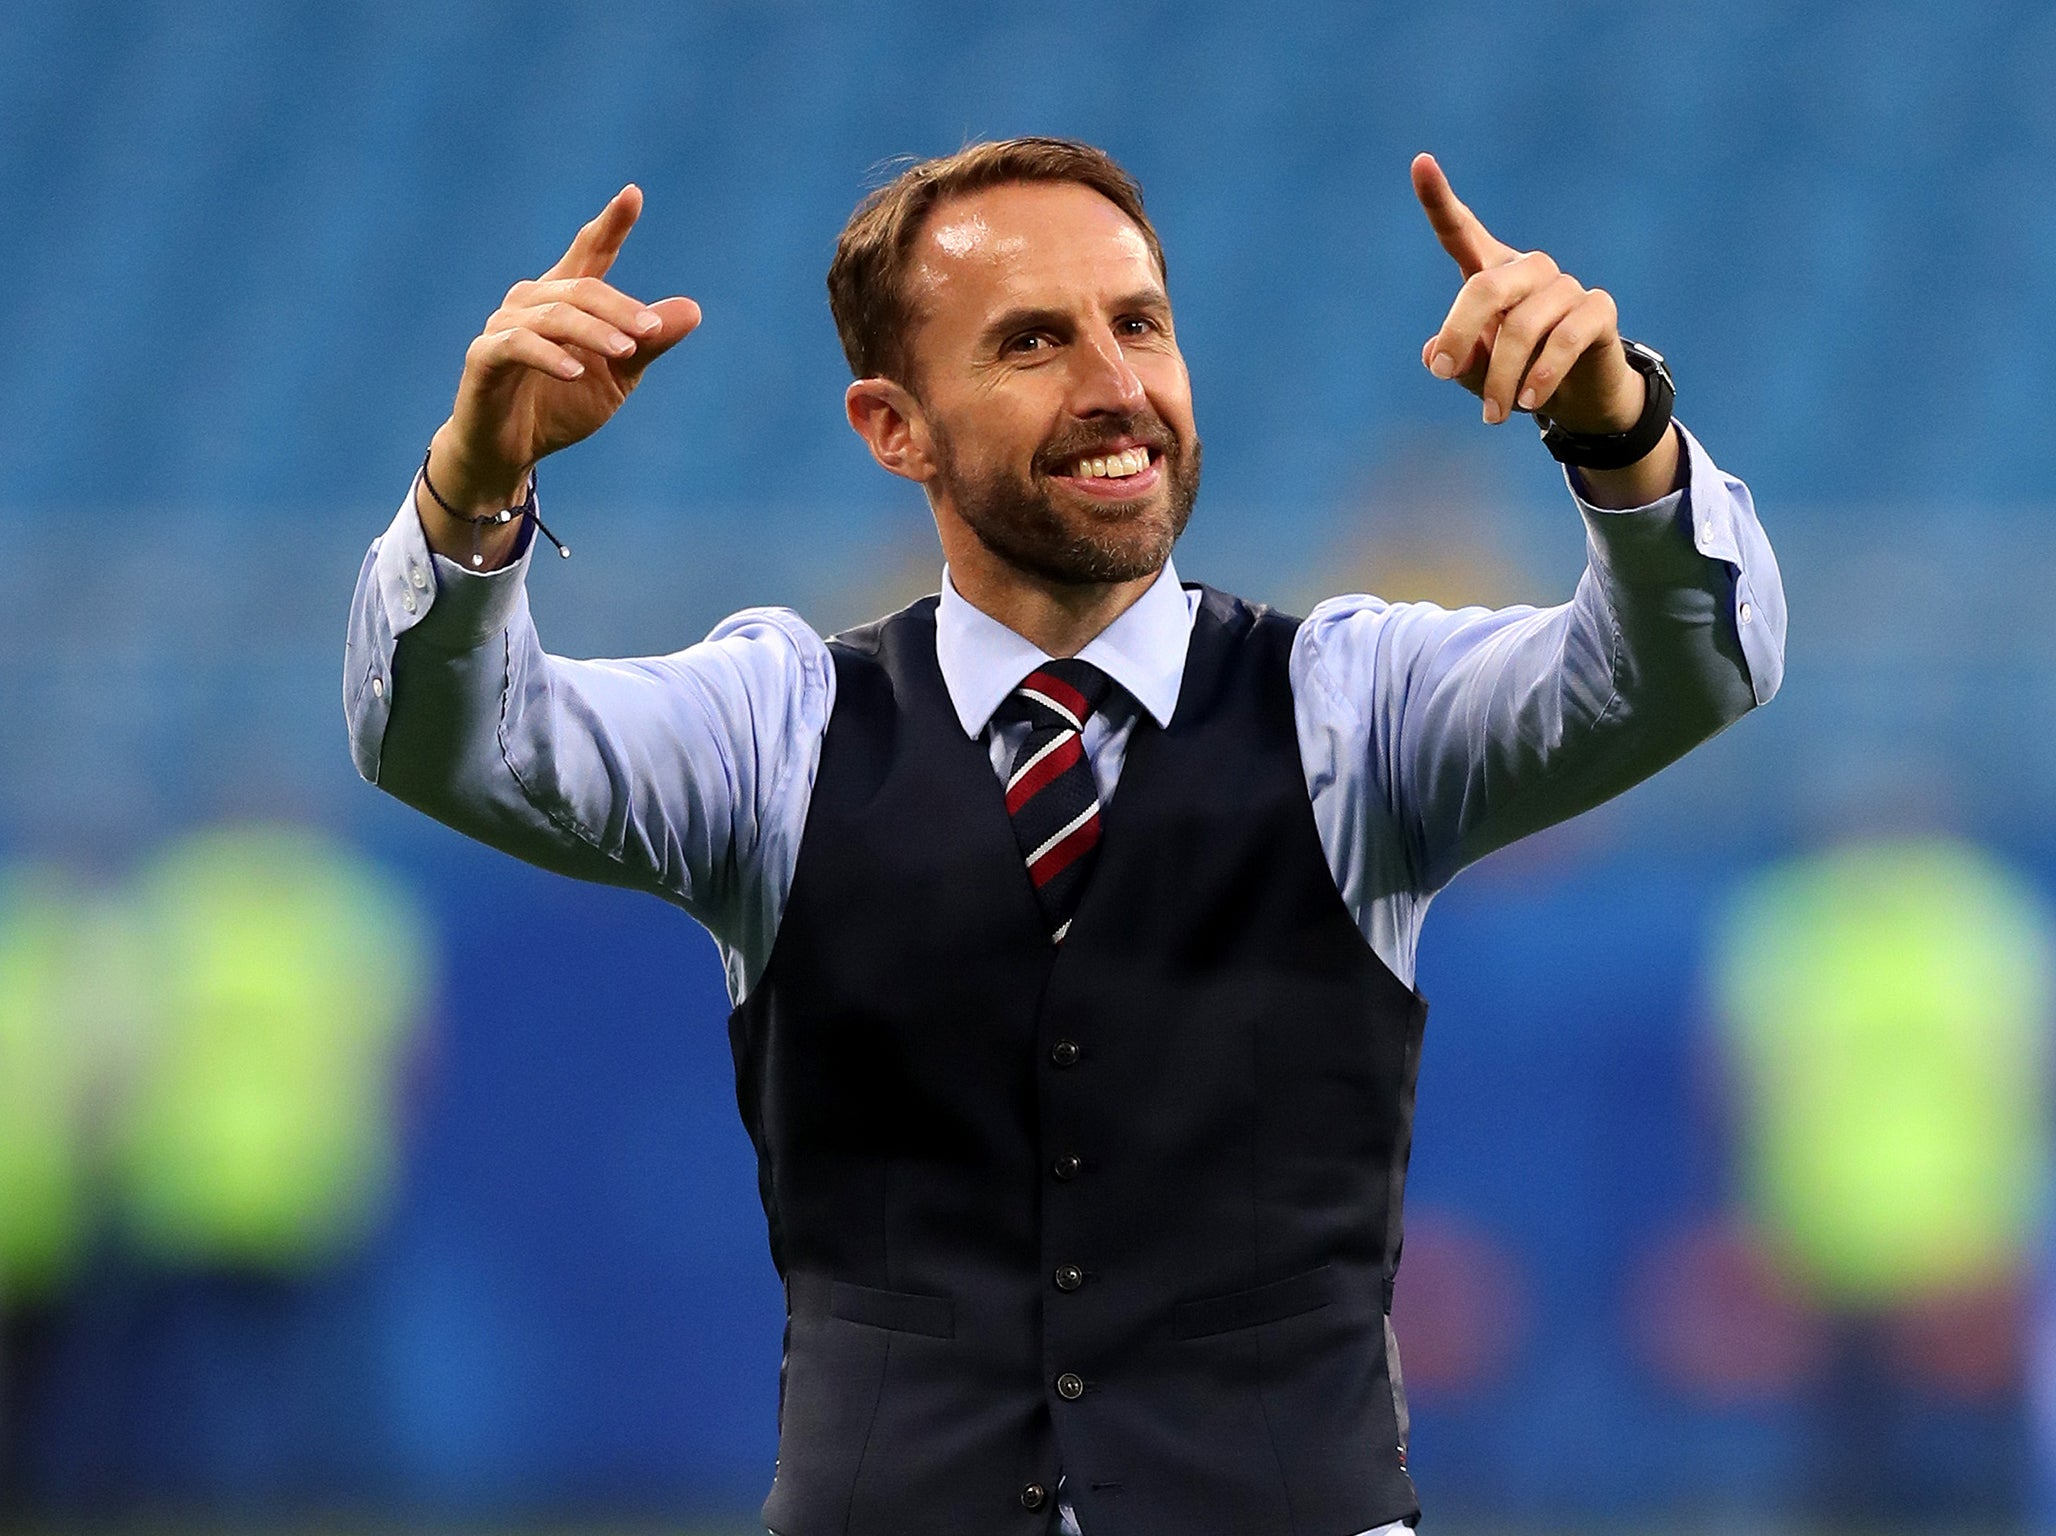 England climb to sixth in Fifa world rankings after reaching 2018 World Cup semi-finals